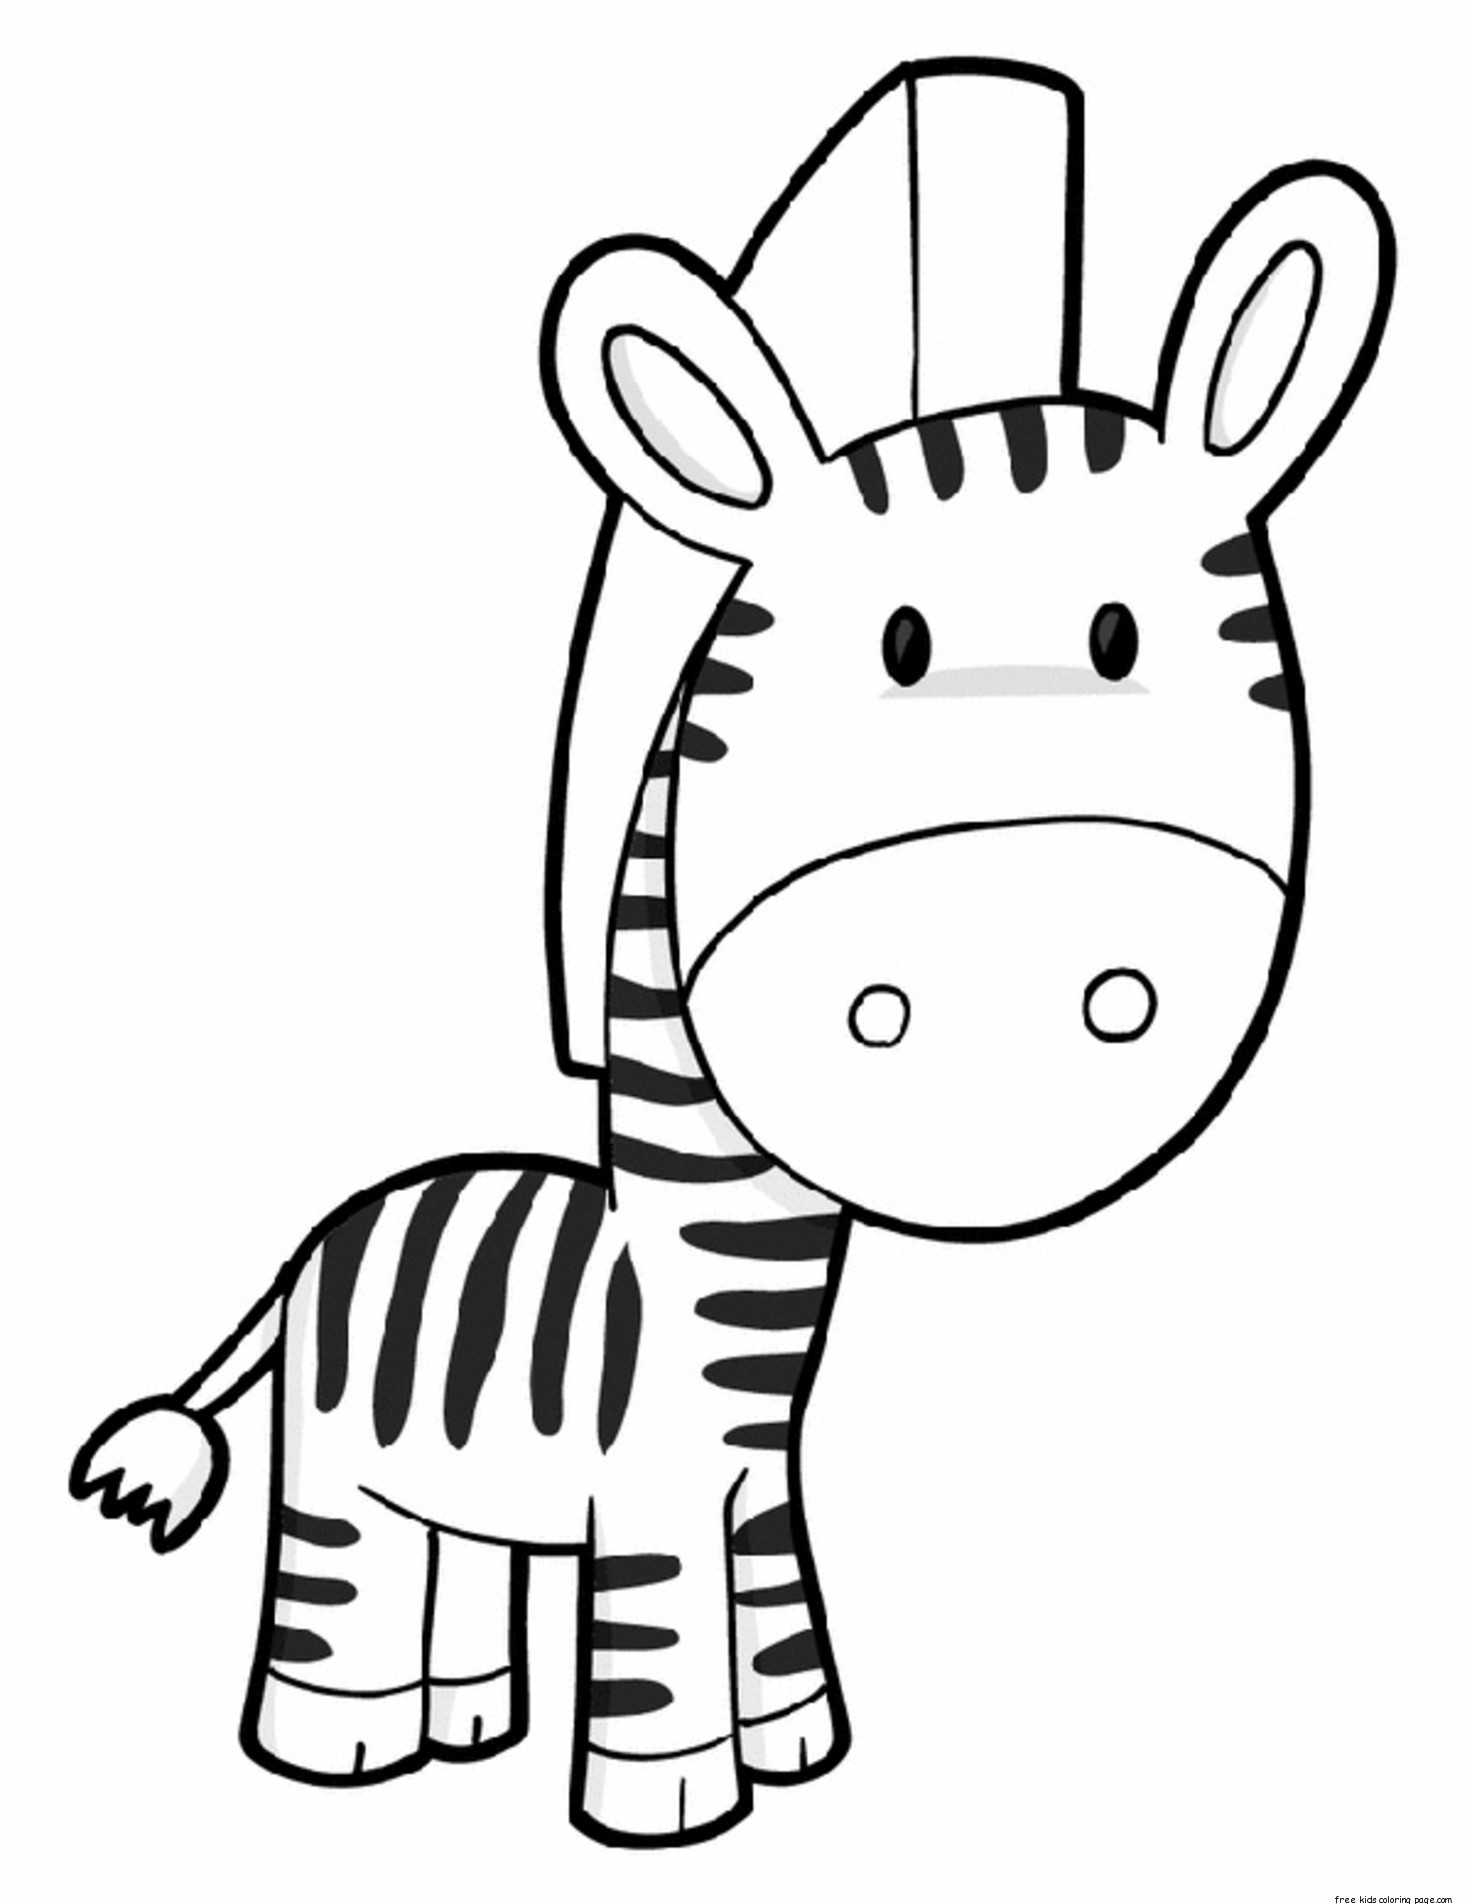 free zebra coloring pages zebra coloring pages download and print zebra coloring pages zebra pages coloring free